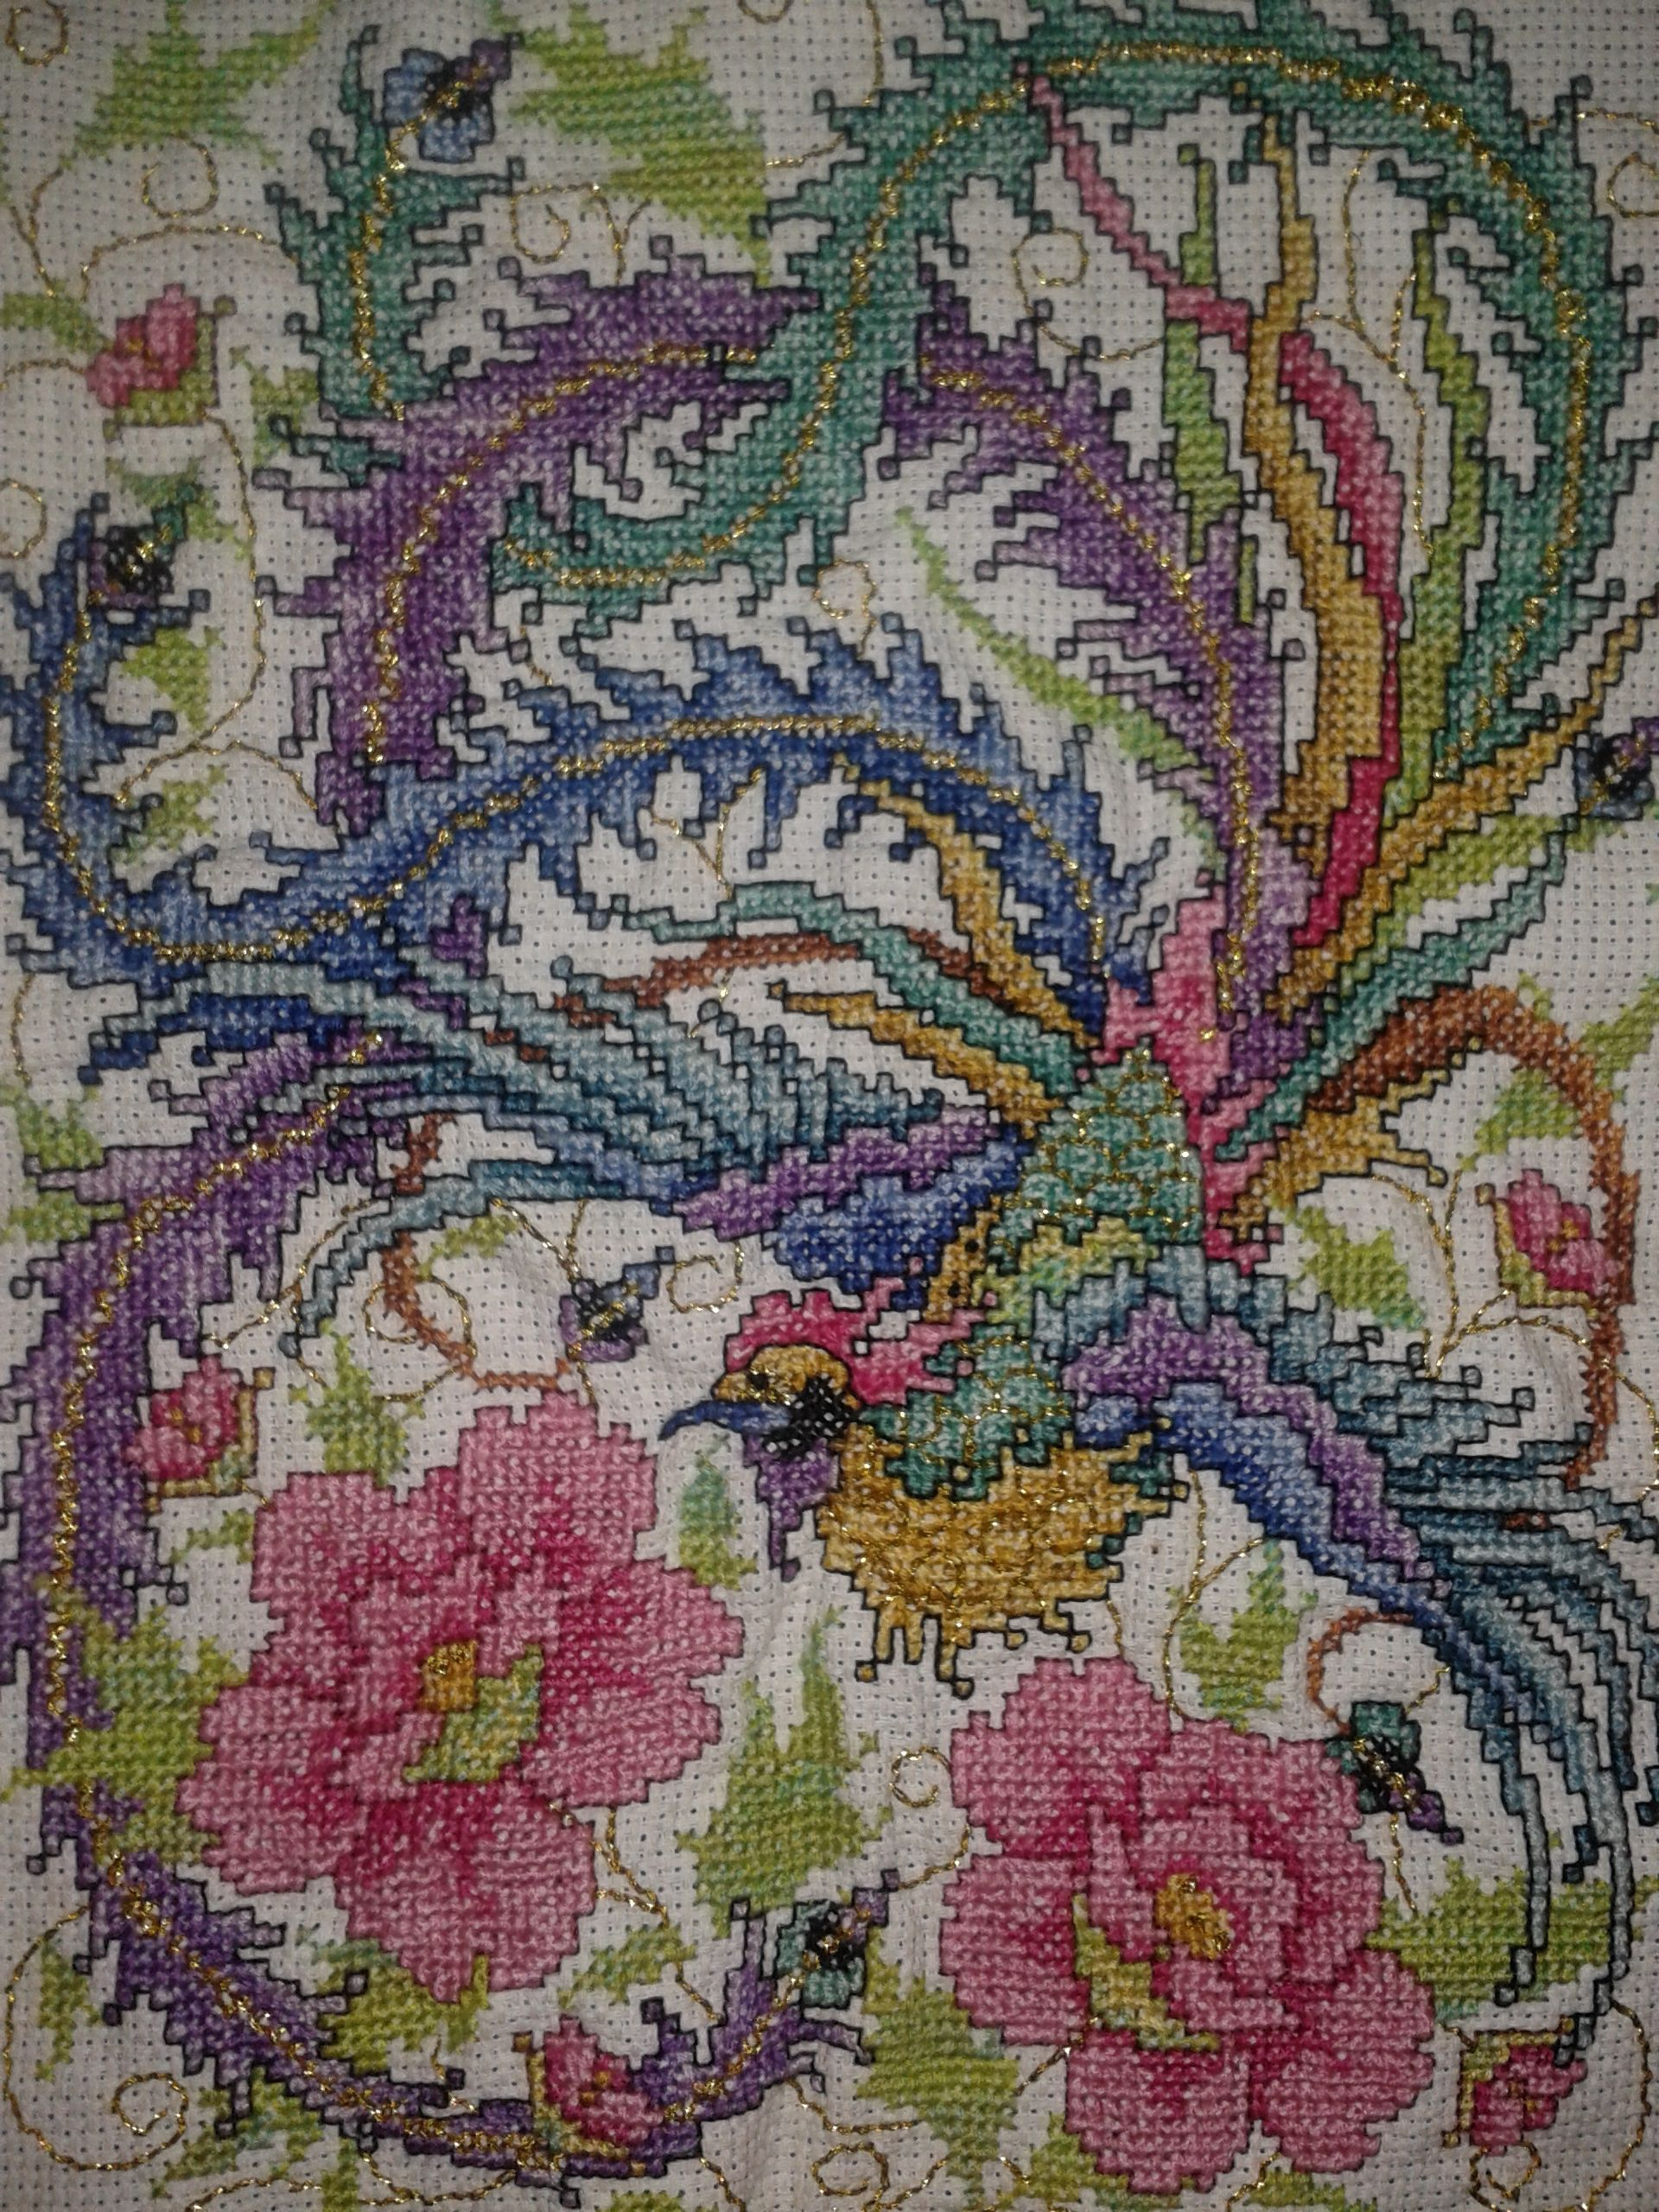 My Chinese Phoenix cross stitch! Took a while but I love showing it ...